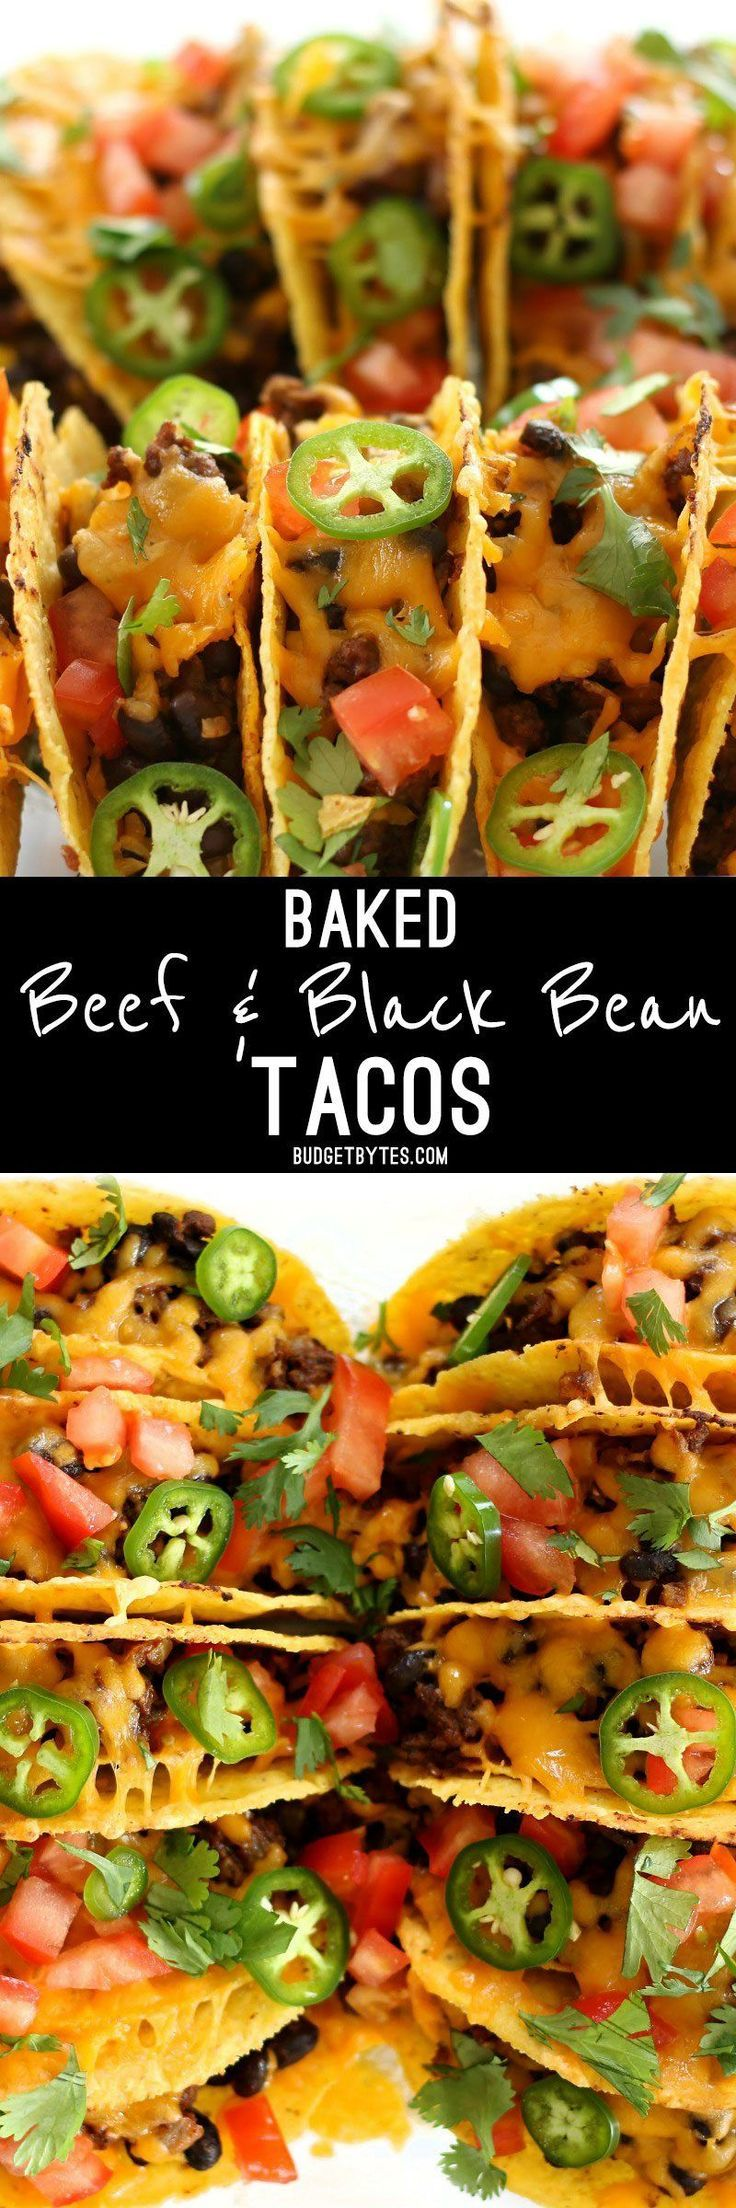 Baked Beef and Black Bean Tacos are a fast and easy way to take Taco Tuesday to the next level and is the perfect last minute weeknight meal.